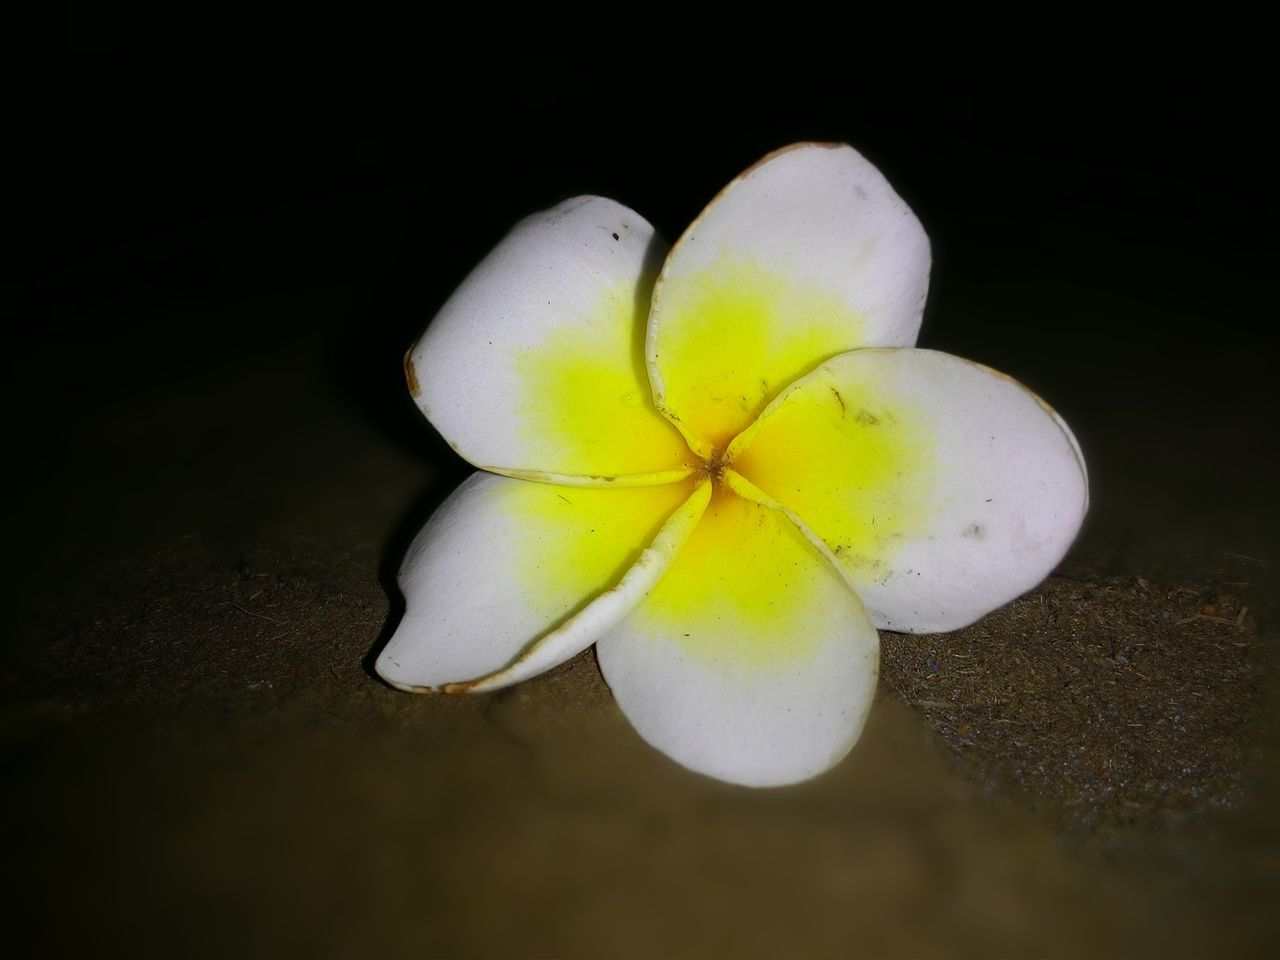 fragility, freshness, no people, petal, studio shot, close-up, flower head, flower, beauty in nature, black background, yellow, nature, food, day, outdoors, frangipani